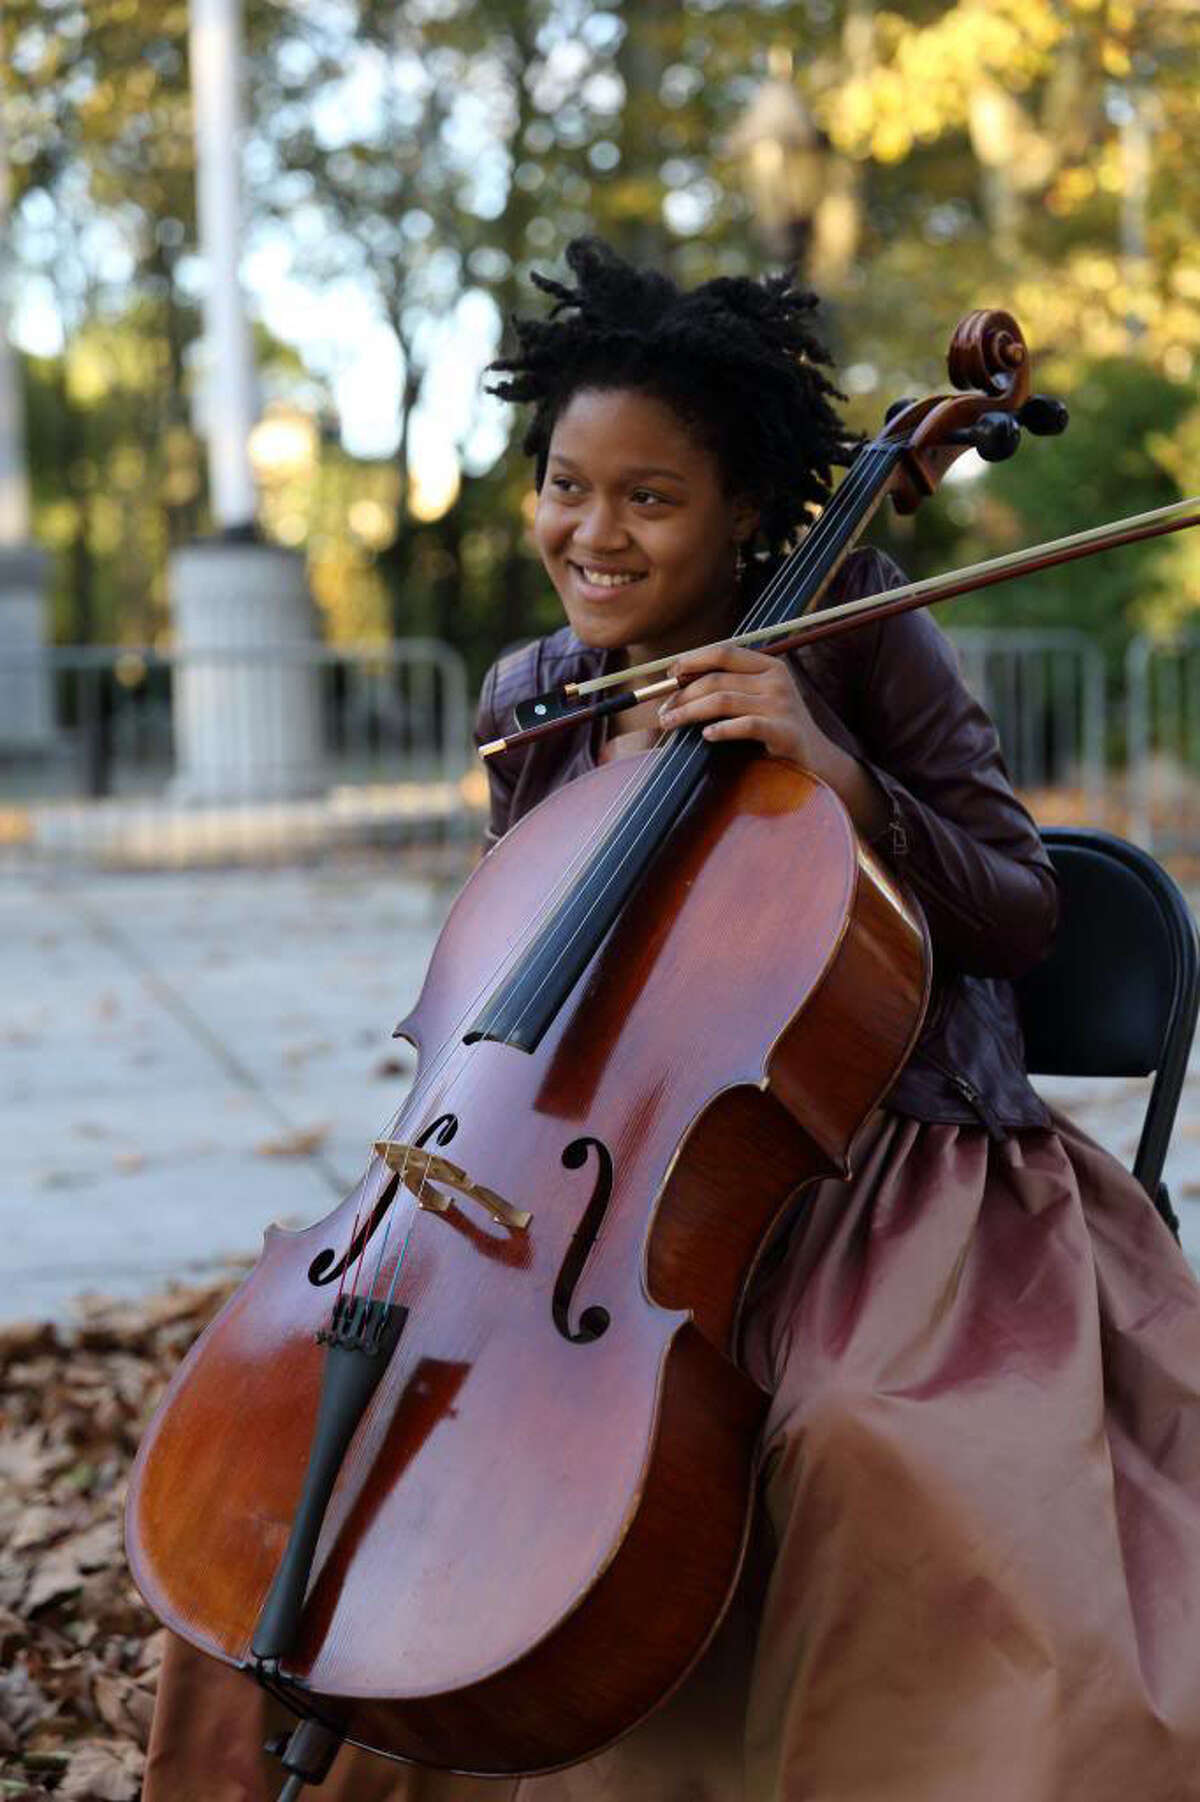 New York City-based Sujari Britt has already achieved acclaim and accolades for her command of the cello and its repertoire. She already has performed at the White House for the president and his family and has appeared on national television. She will perform in Stamford, Conn., on May 18, 2014.